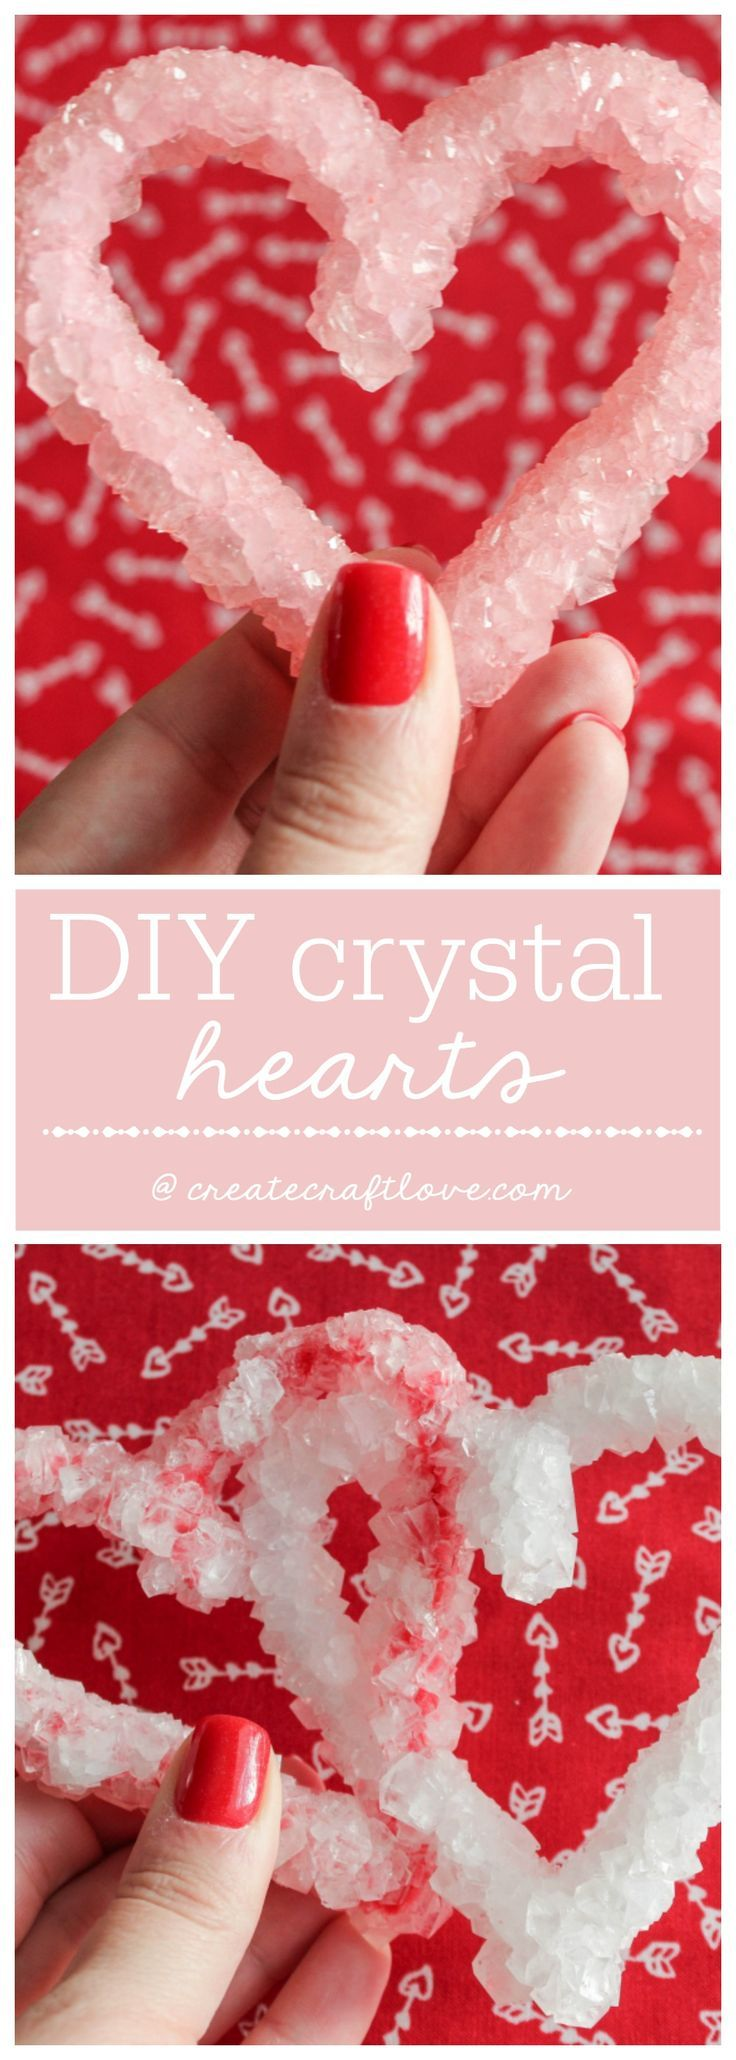 149 Best Valentineu0027s Day Crafts For Adults Images On Pinterest | Hand Made  Gifts, Handmade Gifts And Valentines